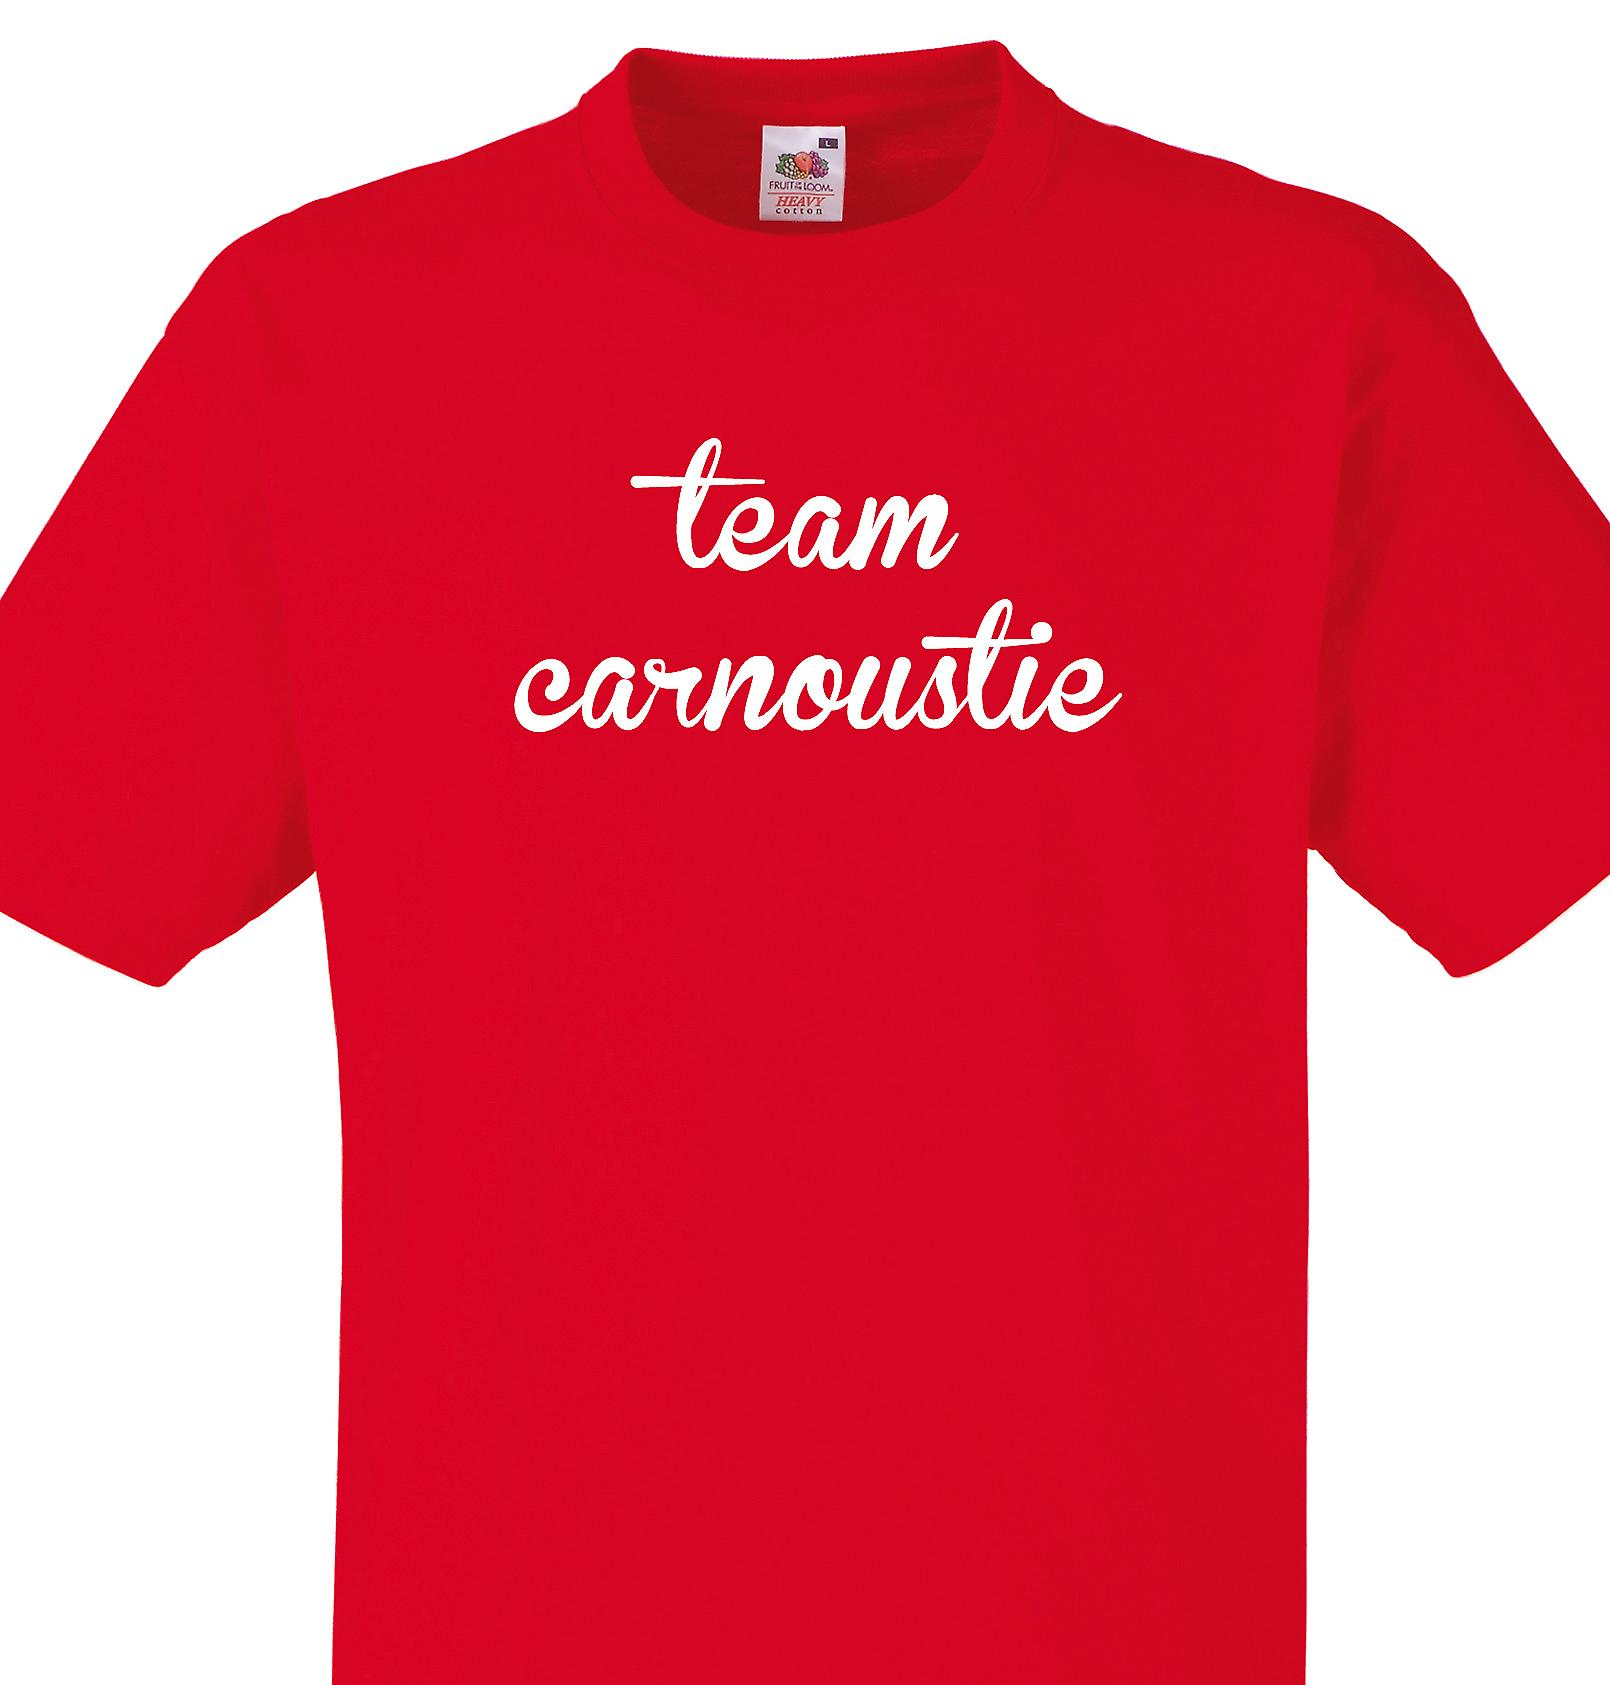 Team Carnoustie Red T shirt